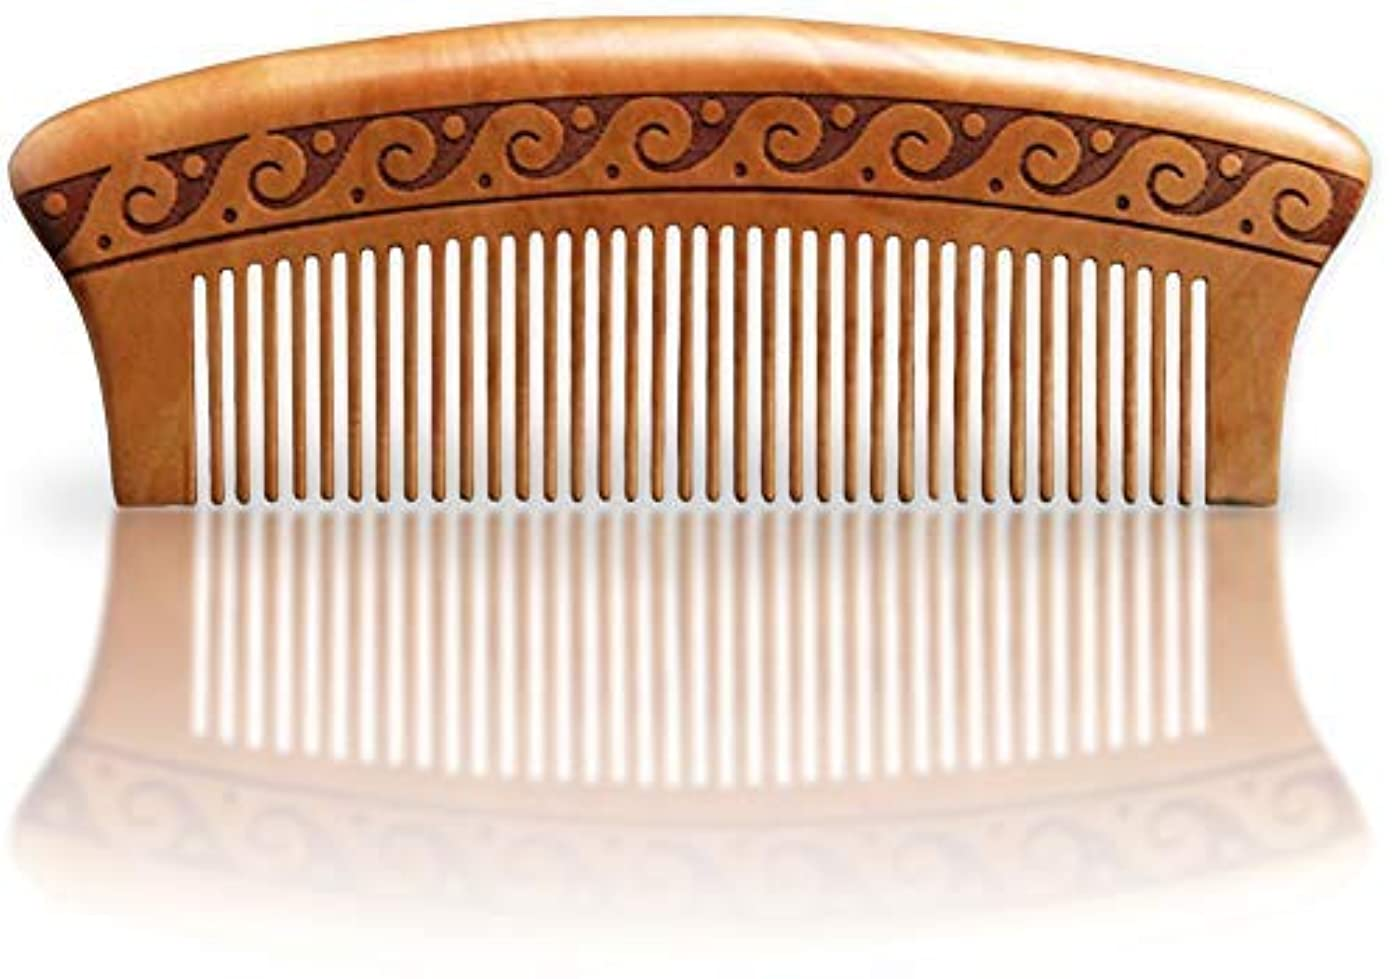 用量読者軽BRIGHTFROM Wooden Hair Comb, Anti-Static, Detangling, Great for Hair, Beard, Mustache, Natural Peach Wood [並行輸入品]